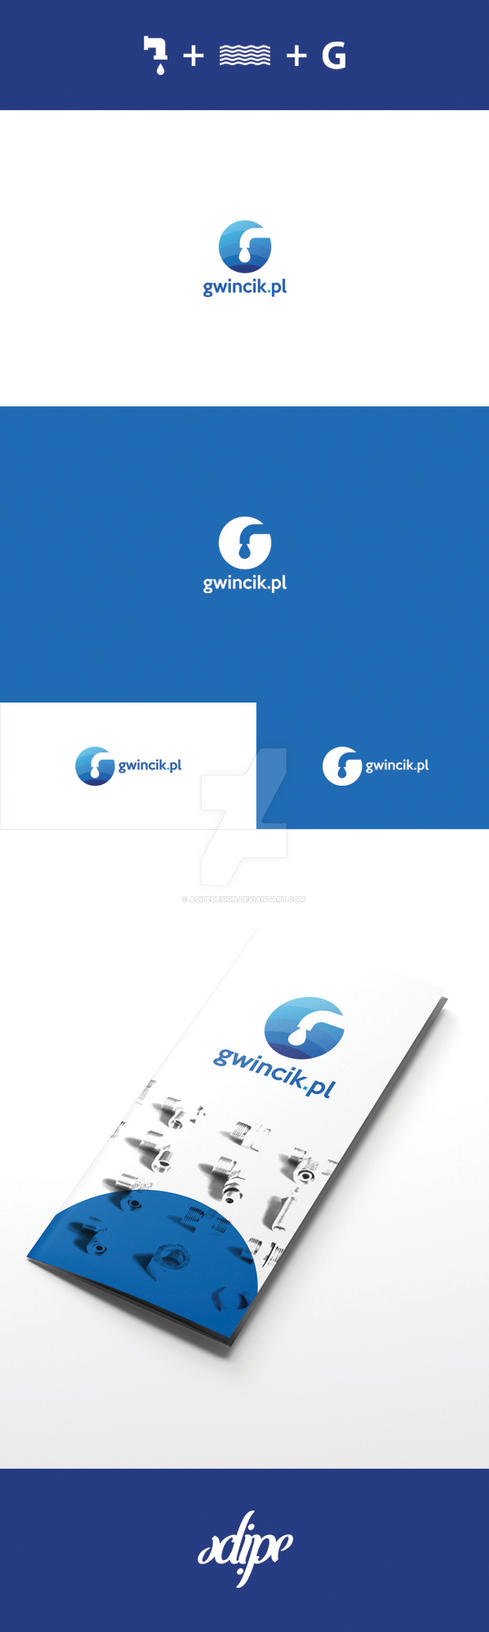 Gwincik.pl by adipeDesign